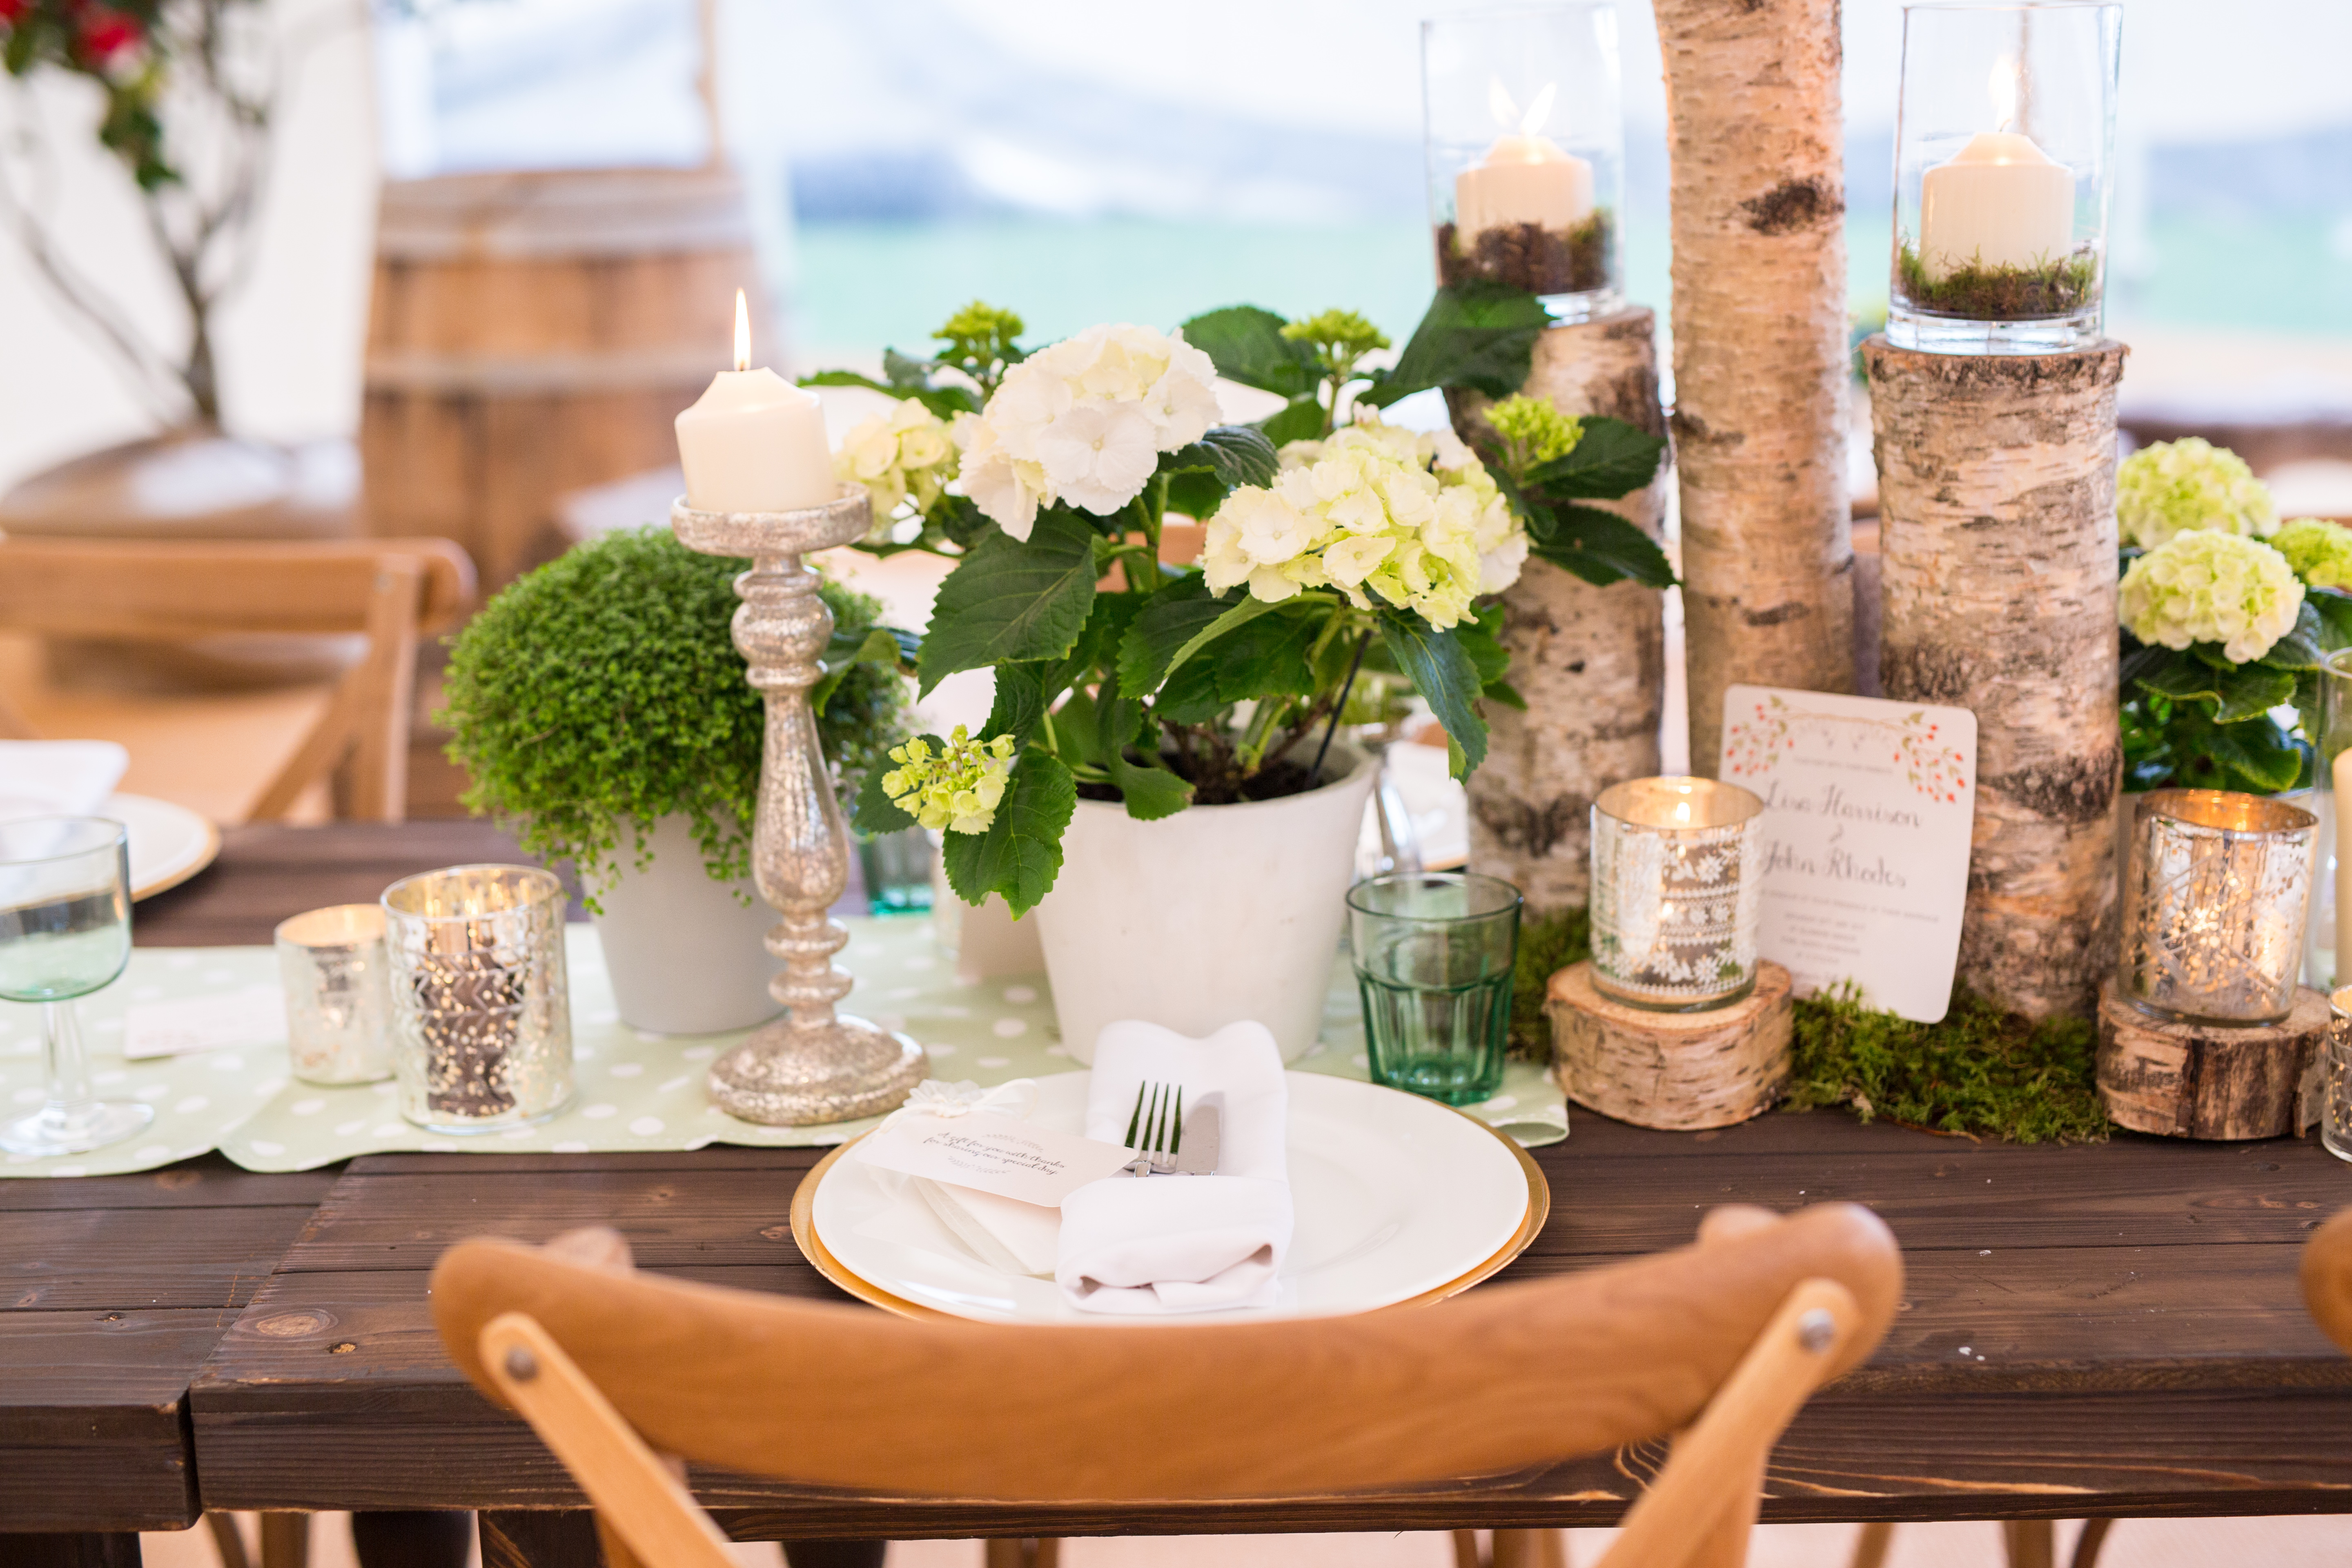 Stunning tablescapes by Hart Company & hand-painted stationery by Rigby Design House